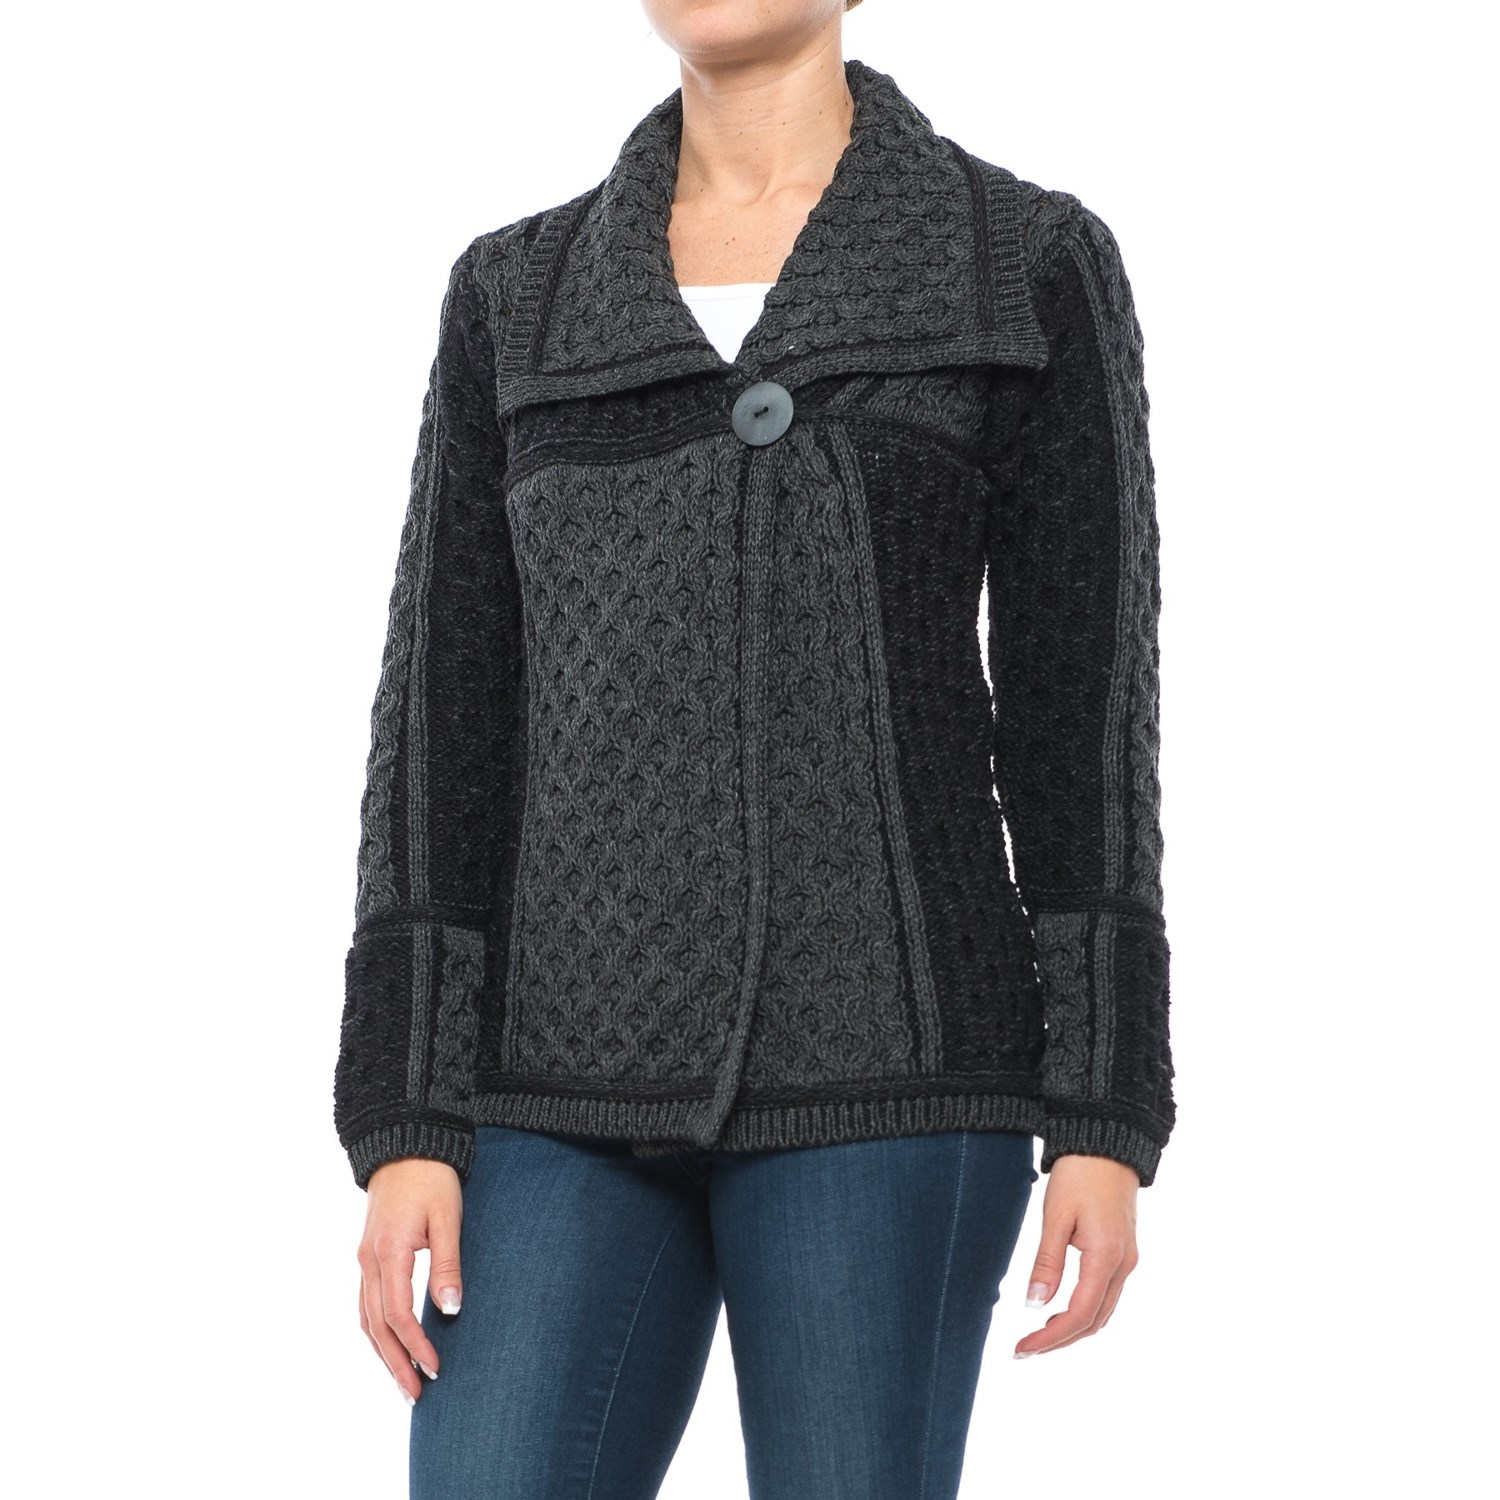 Aran Mor Short One-Button Cardigan Sweater (For Women) - Save 51%